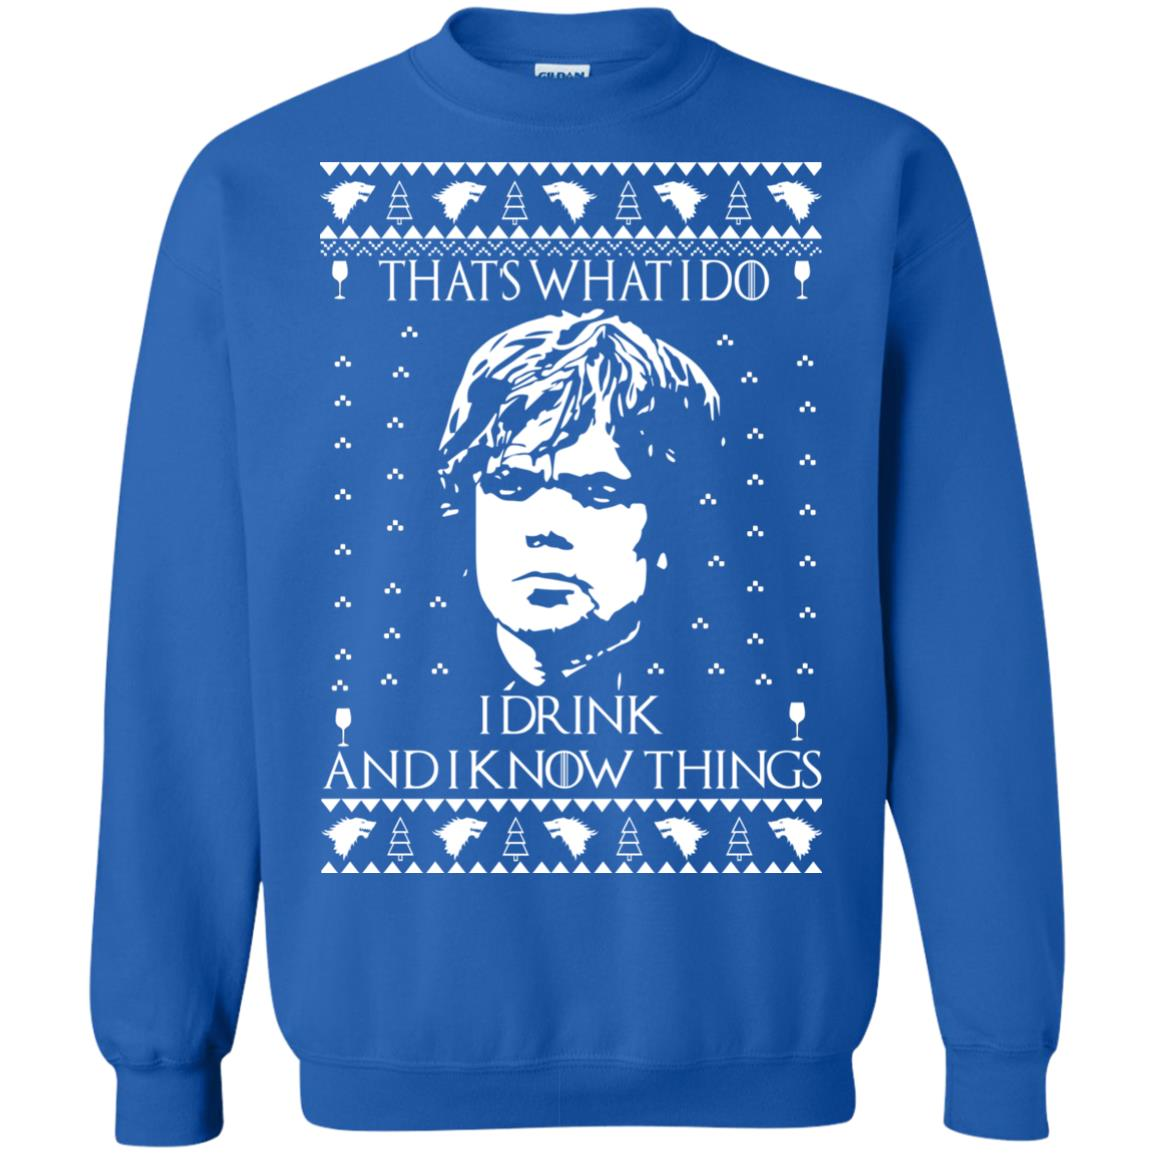 image 3011 - Tyrion Lannister I Drink and I Know Things Ugly Christmas Sweater, Shirt